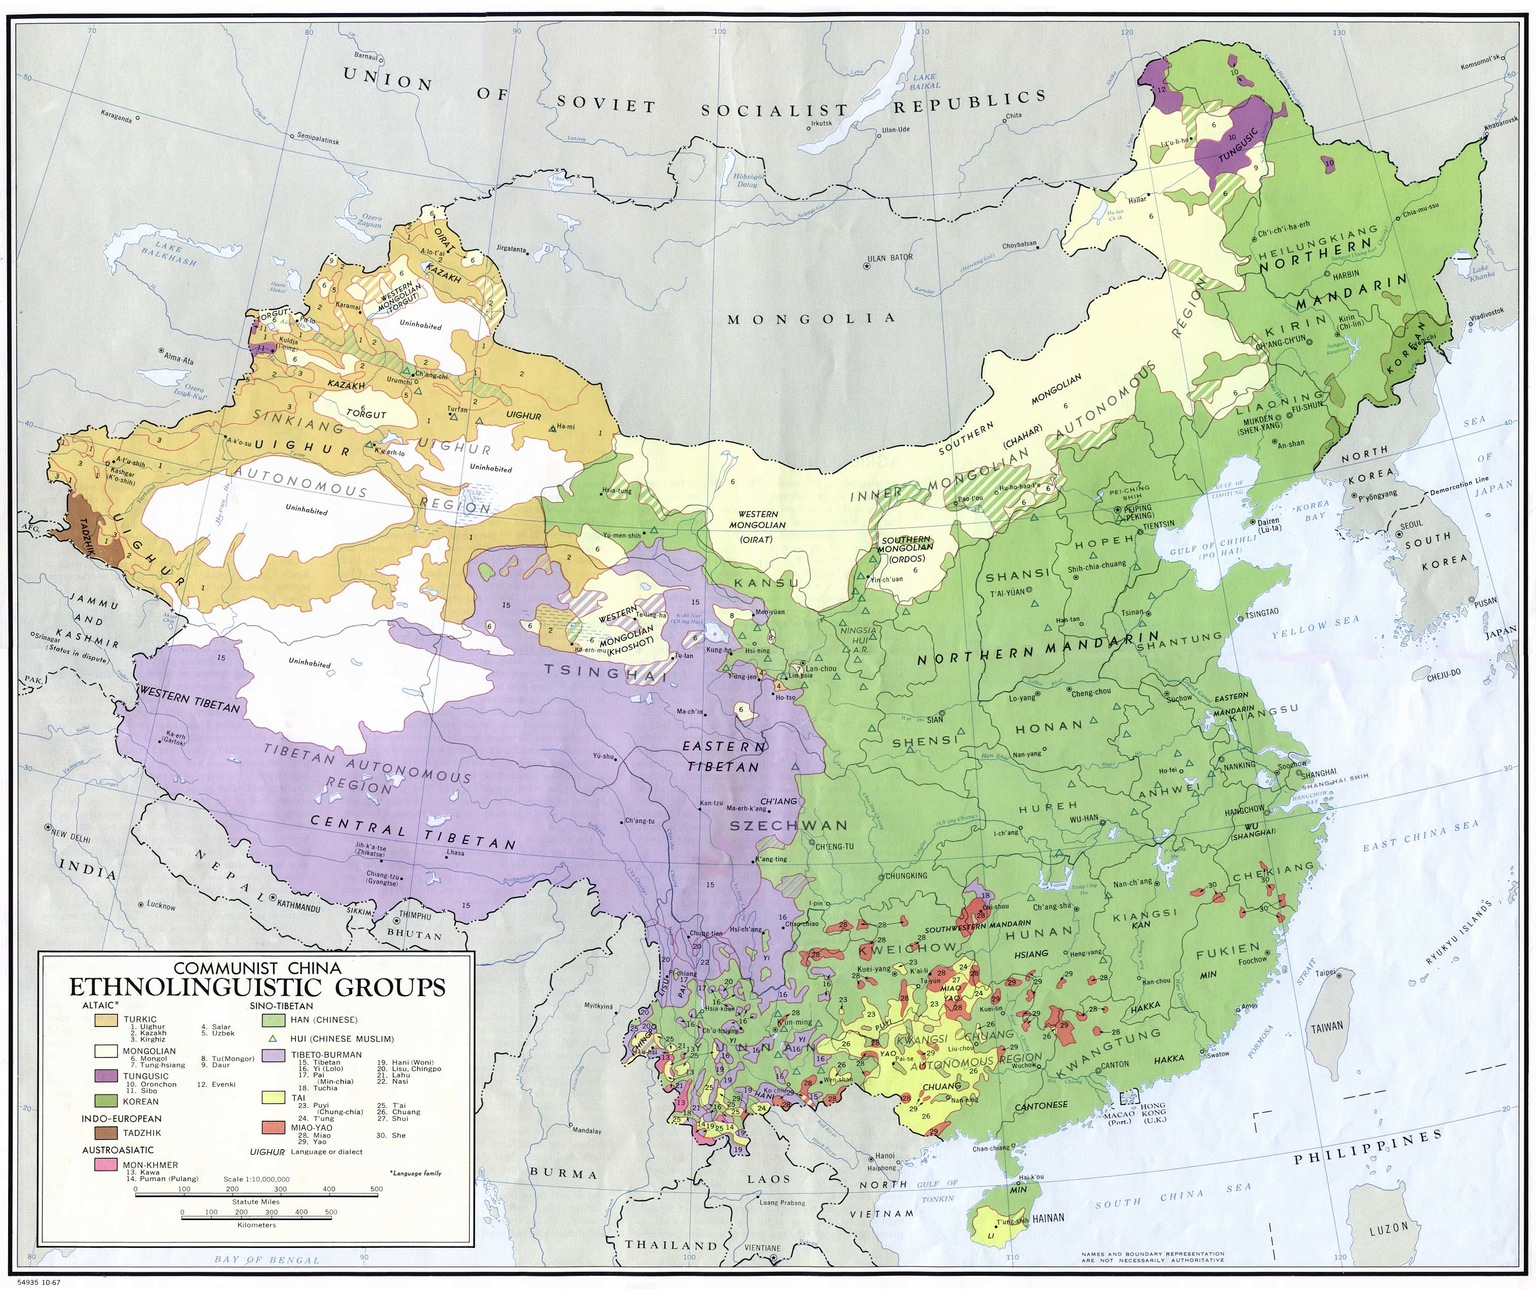 Ethnolinguistic groups of China (1967)